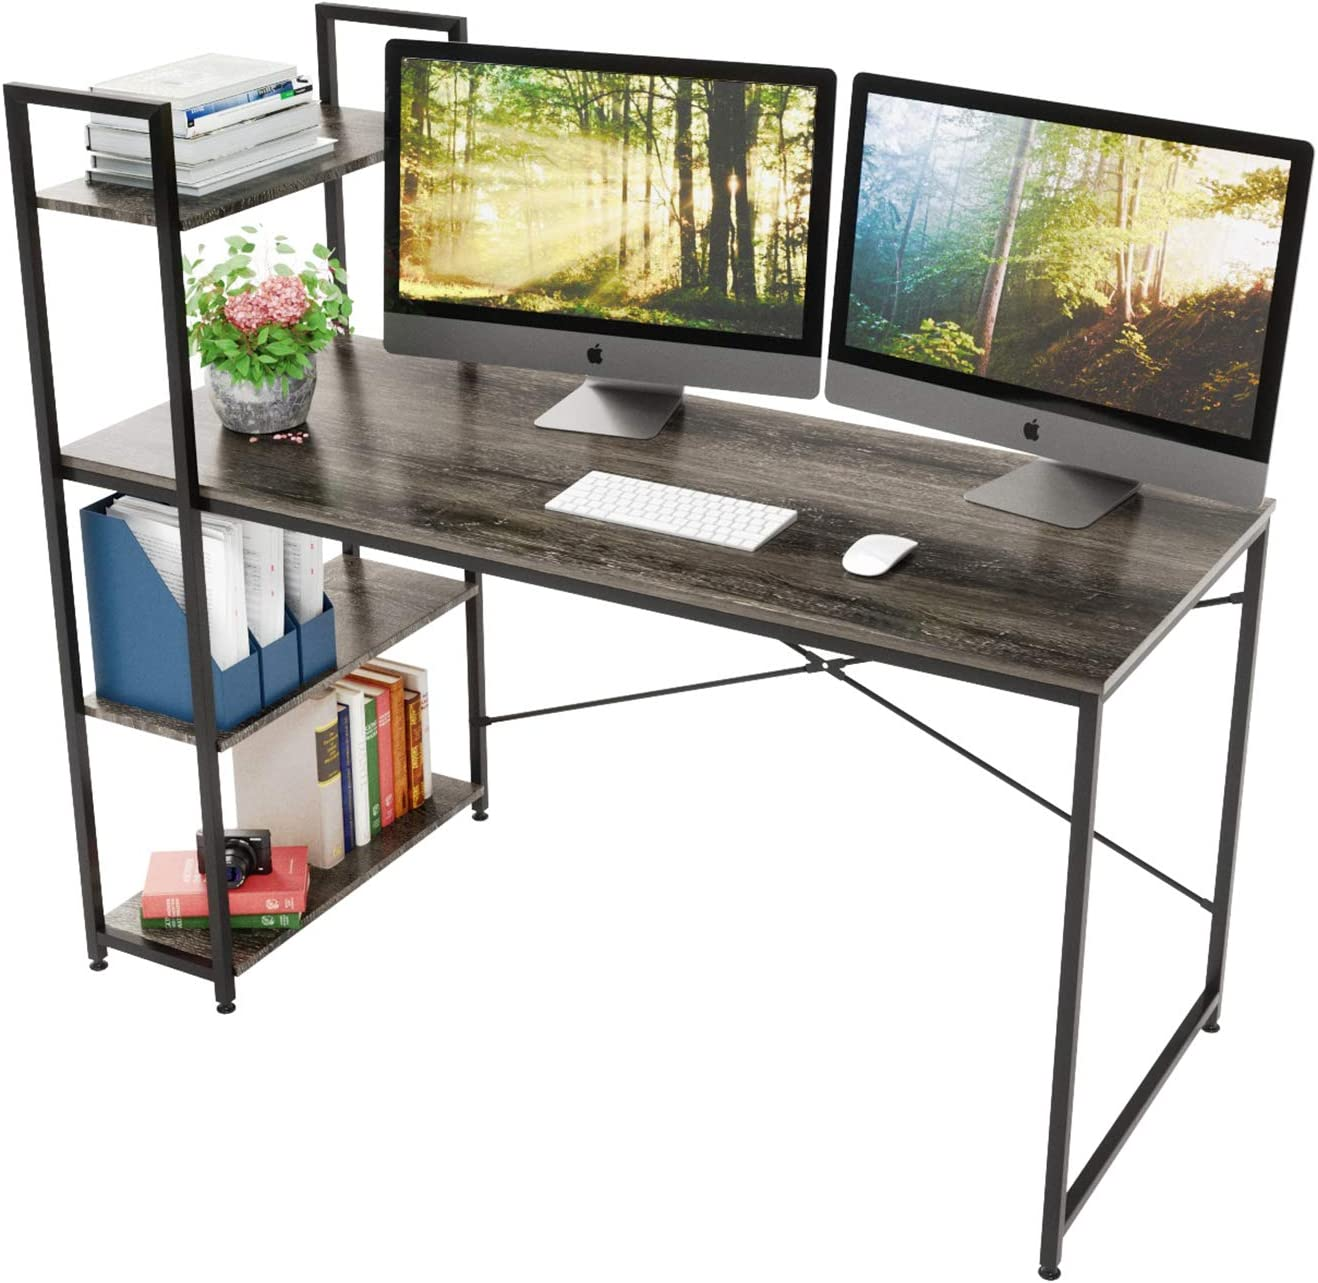 Bestier 55 Inch Computer Desk with Shelves, Modern Writing Desk with Bookshelf PC Desk with Reversible Storage Shelves, Study Corner Desk Writing Table for Home Office Easy Assemble (55 Inch, Grey)